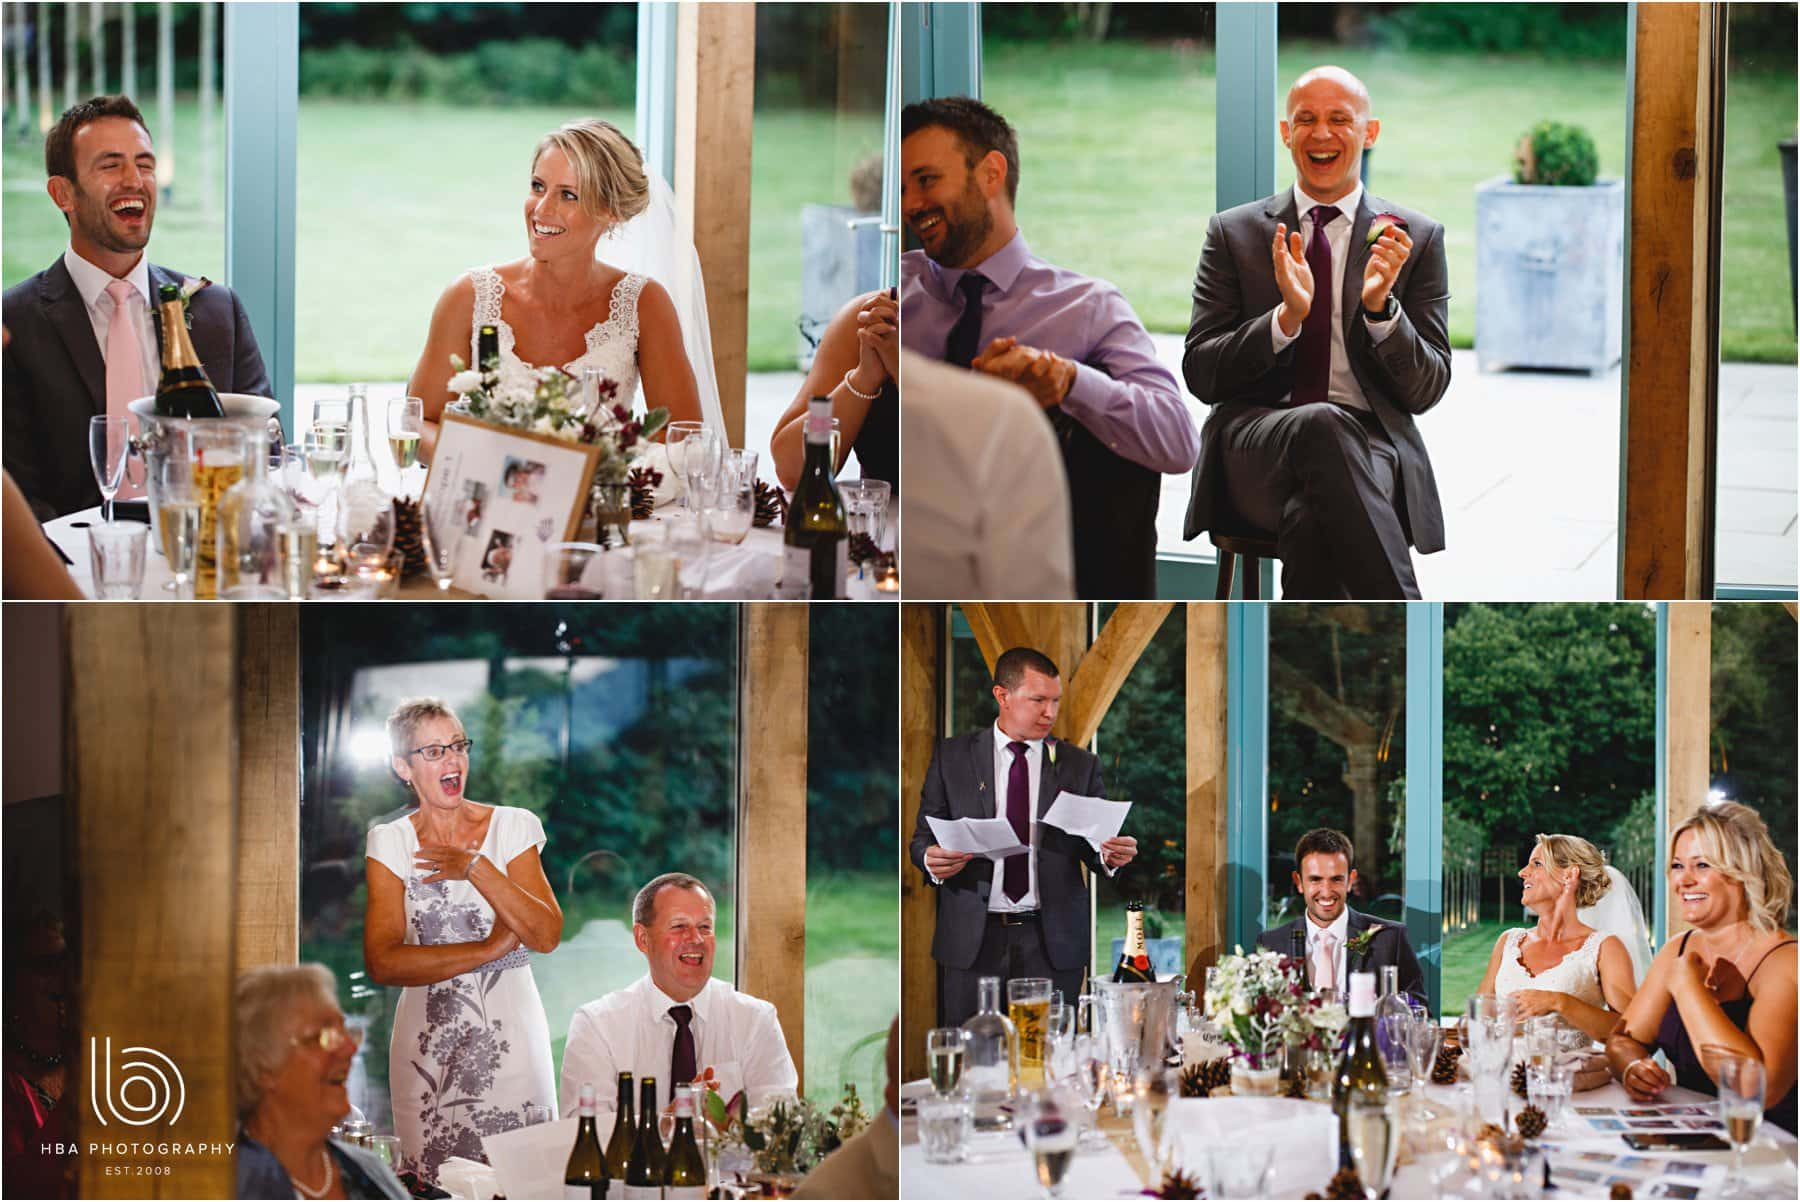 the wedding speeches at Hazel Gap